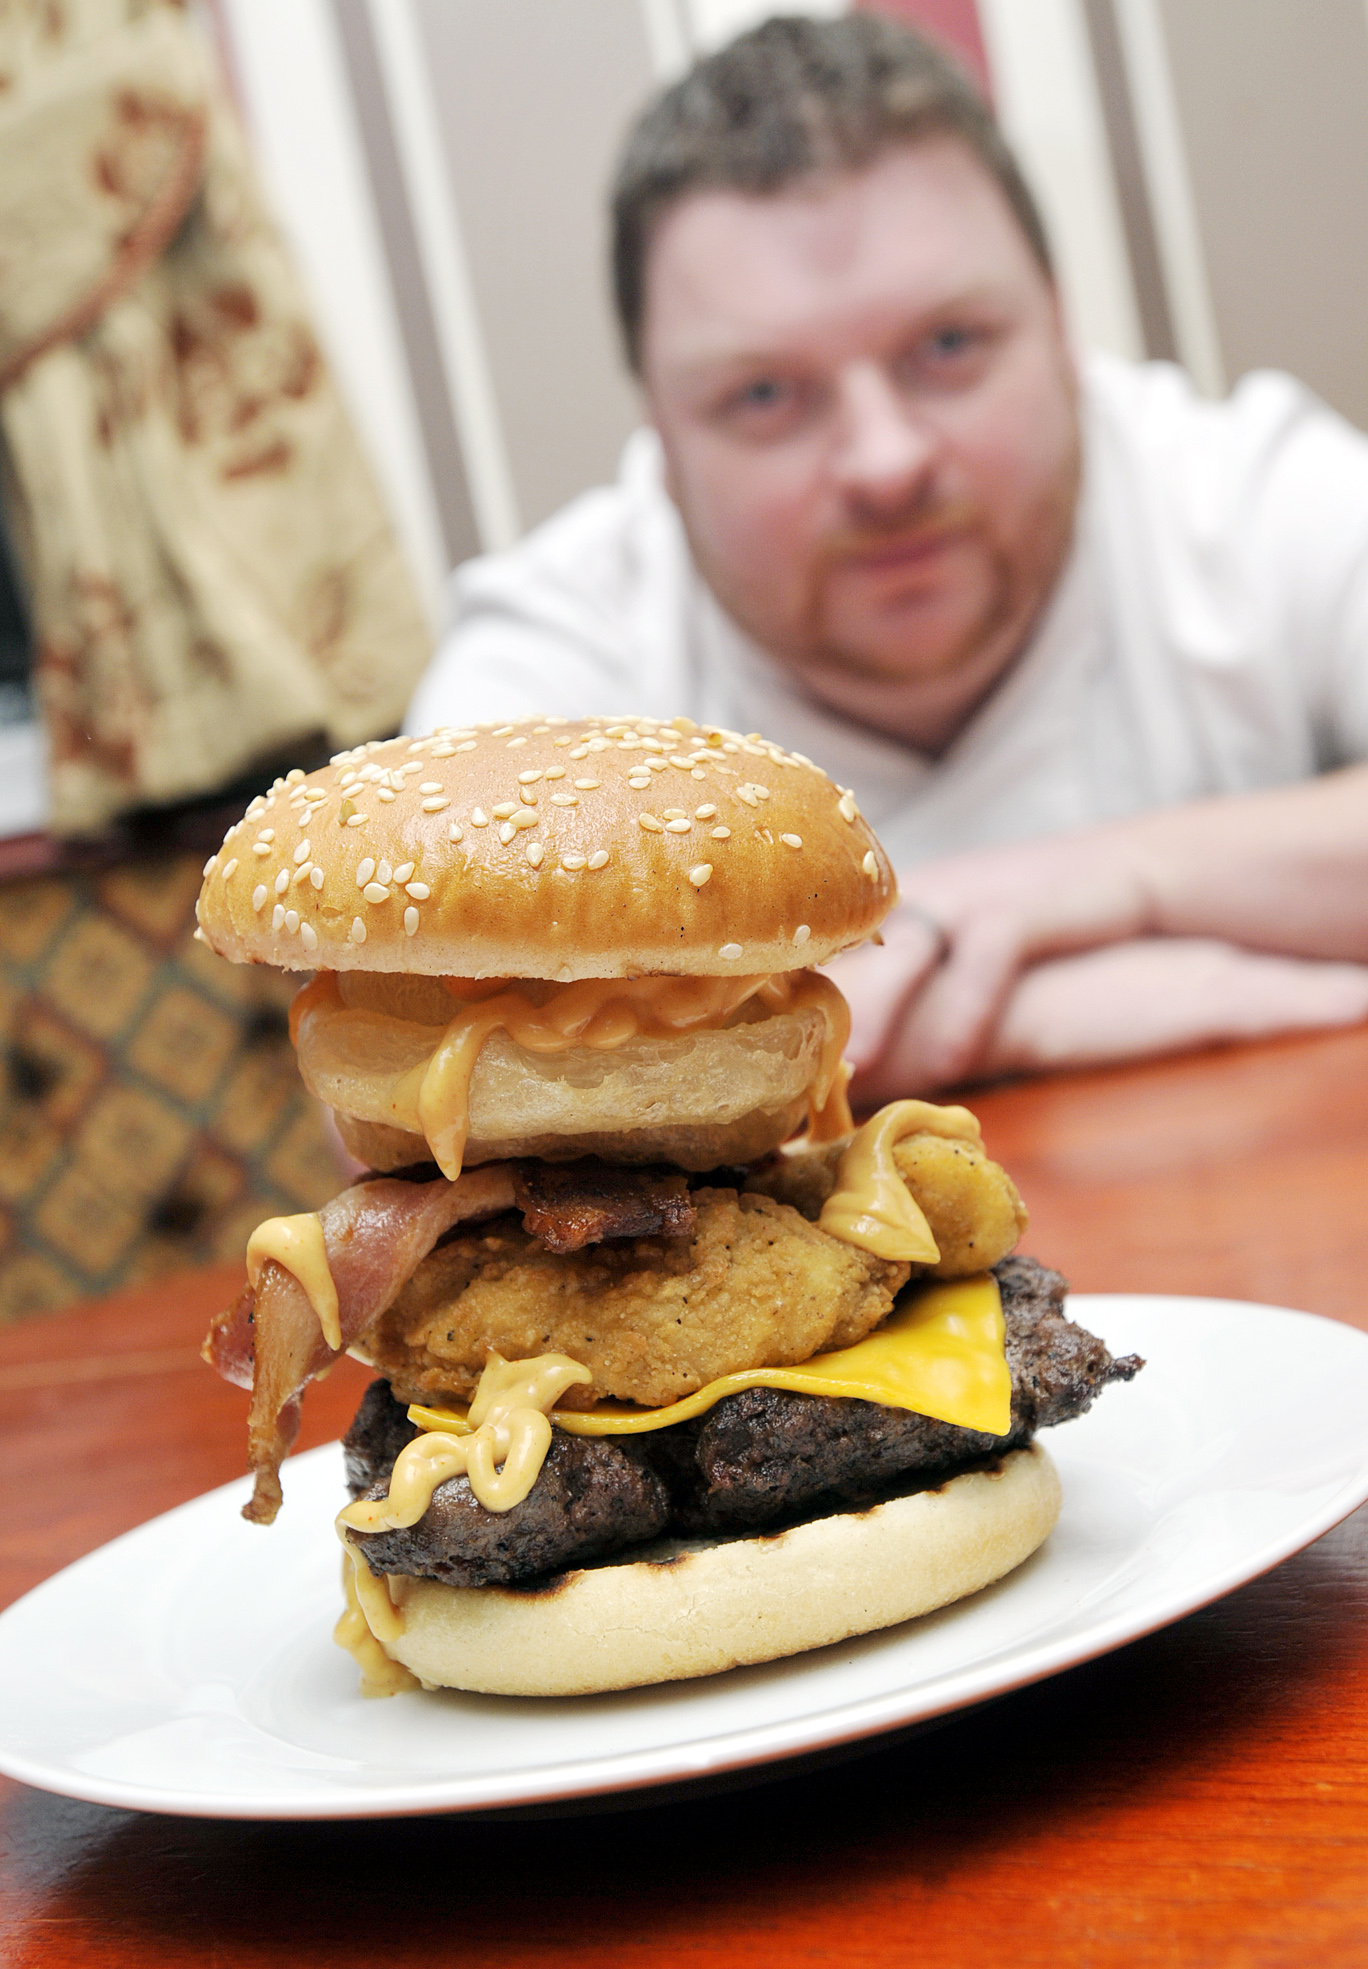 The 900 calorie burger and 'A-pork-alypse Cow': Darcy Lever pub launches Man vs Food-style menu